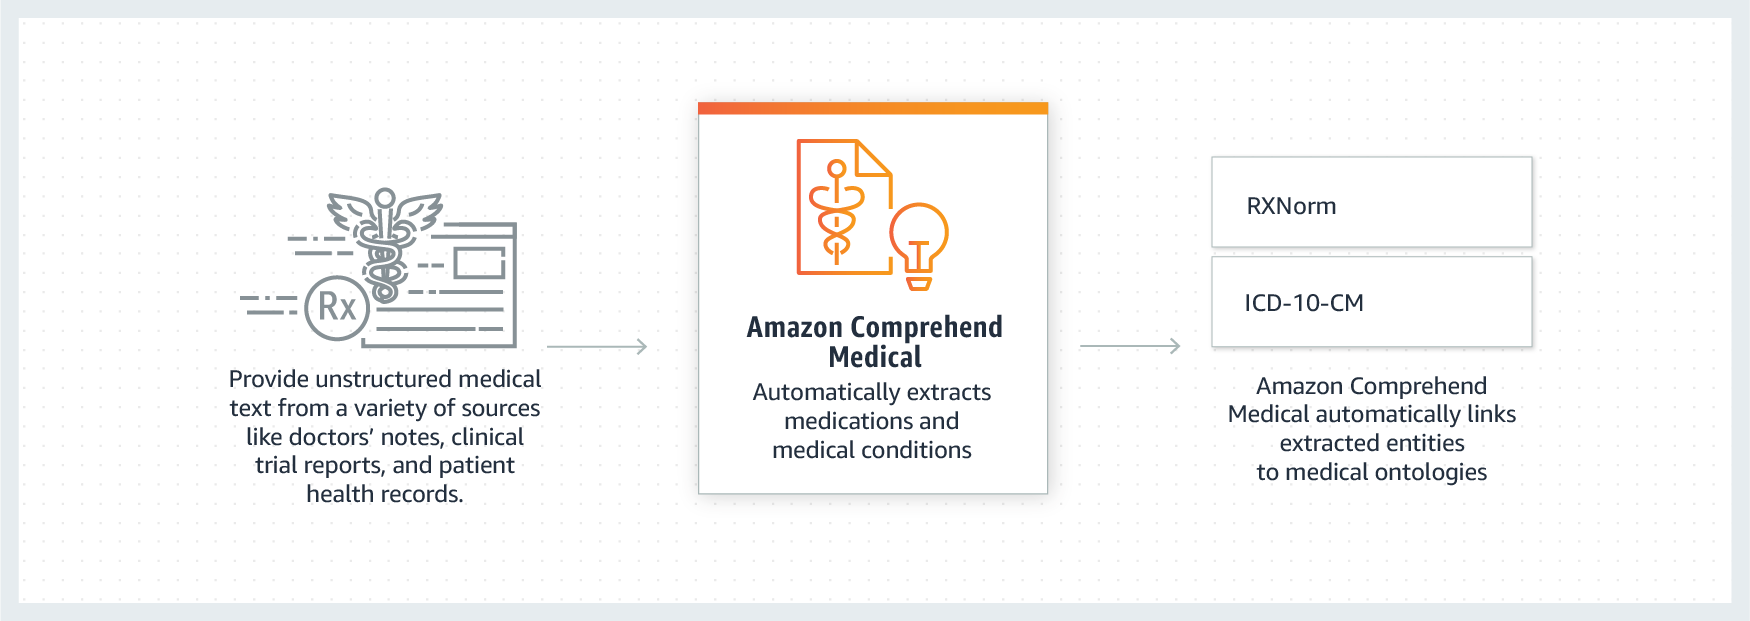 How Amazon Comprehend Medical works